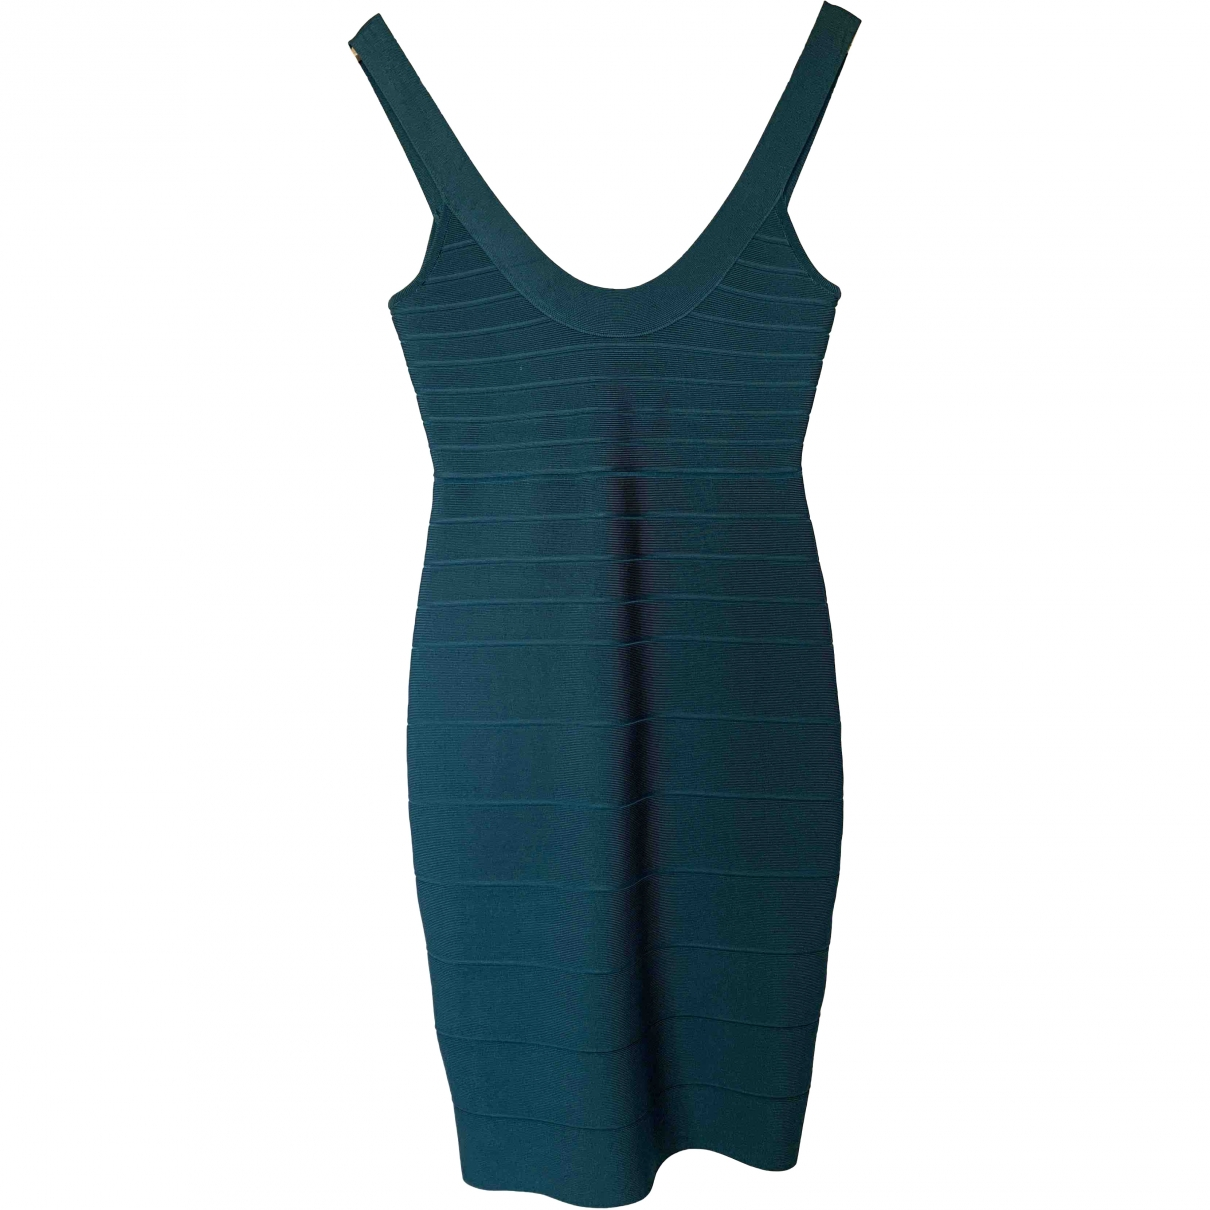 Herve Leger \N Turquoise Cotton dress for Women S International